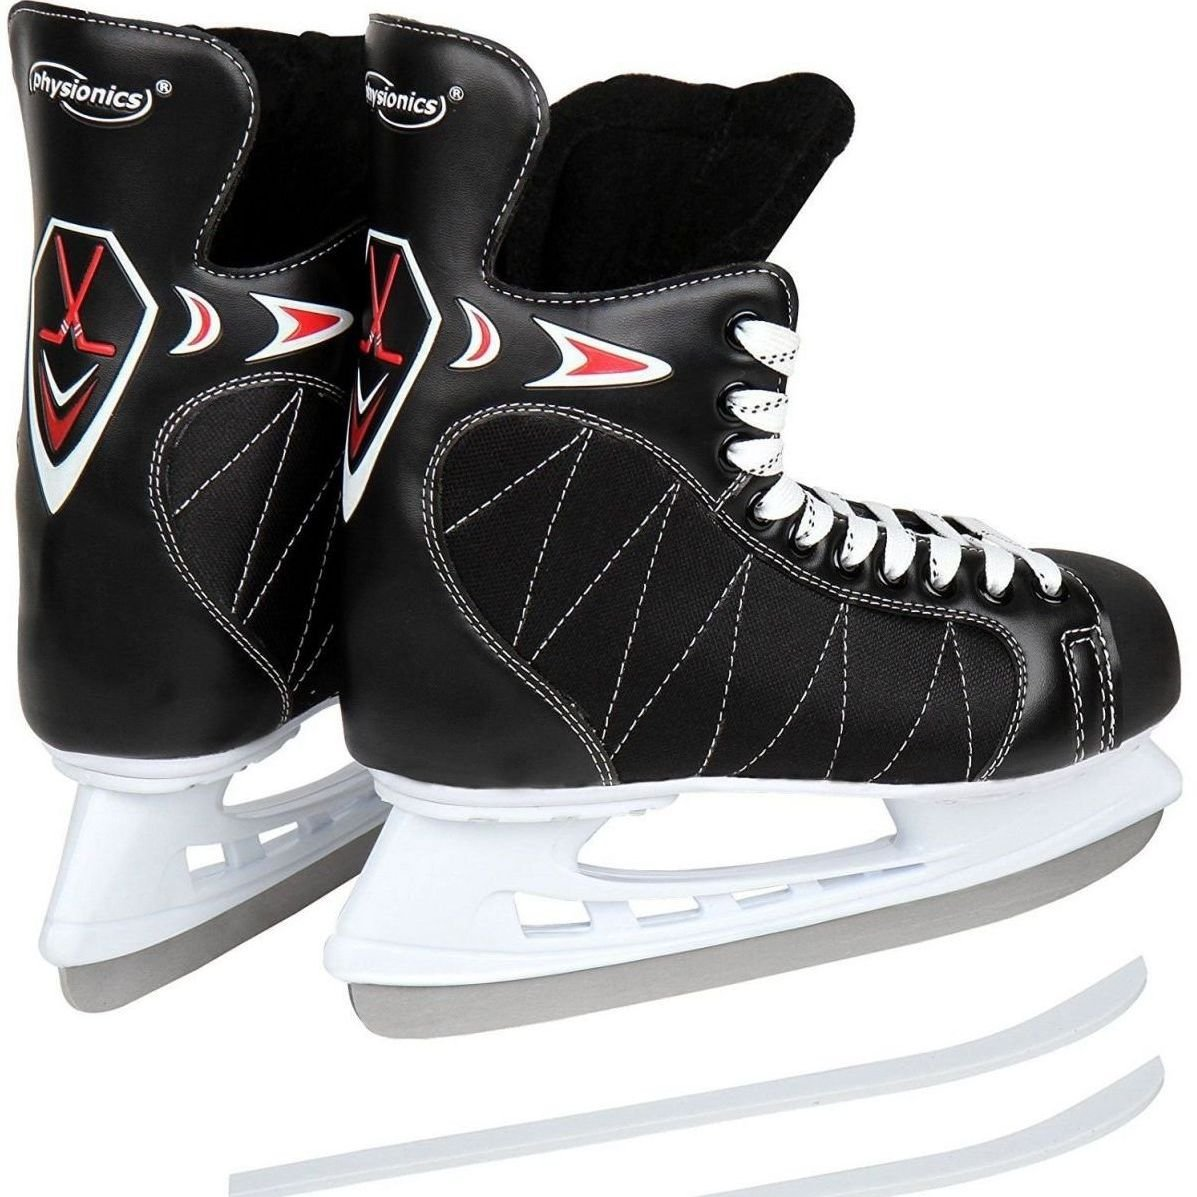 patines hockey hielo physionics